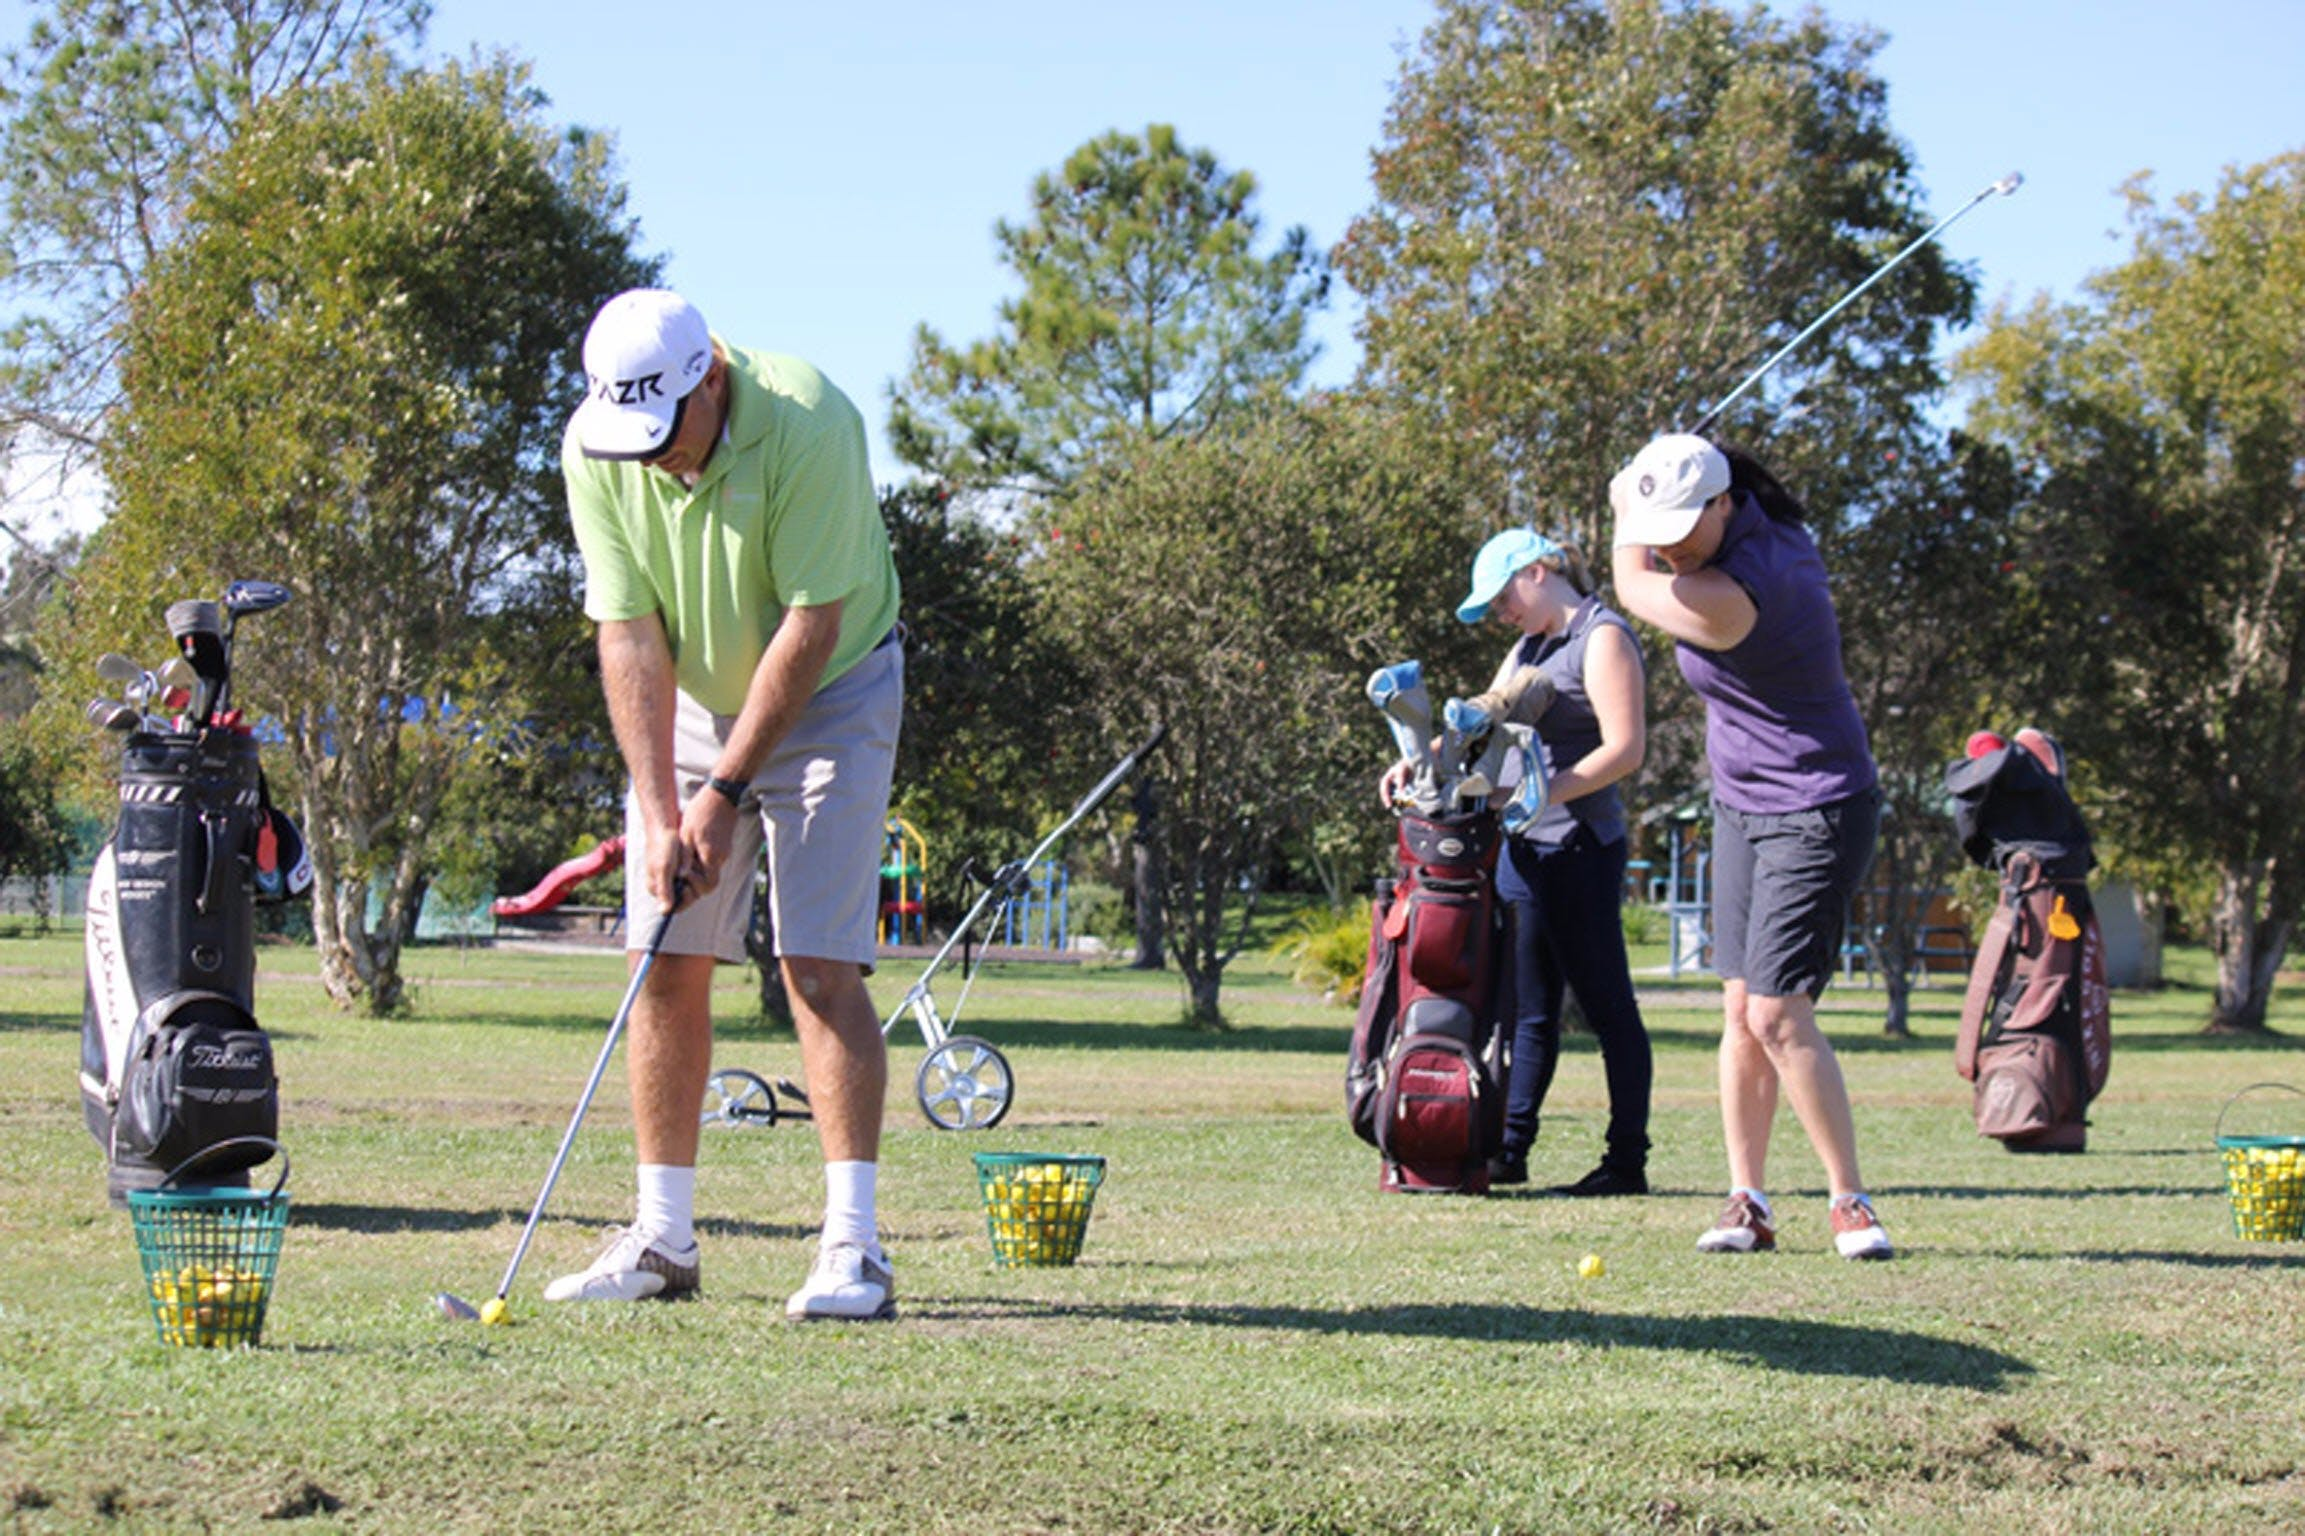 Nambucca River Golf Driving Range - Attractions